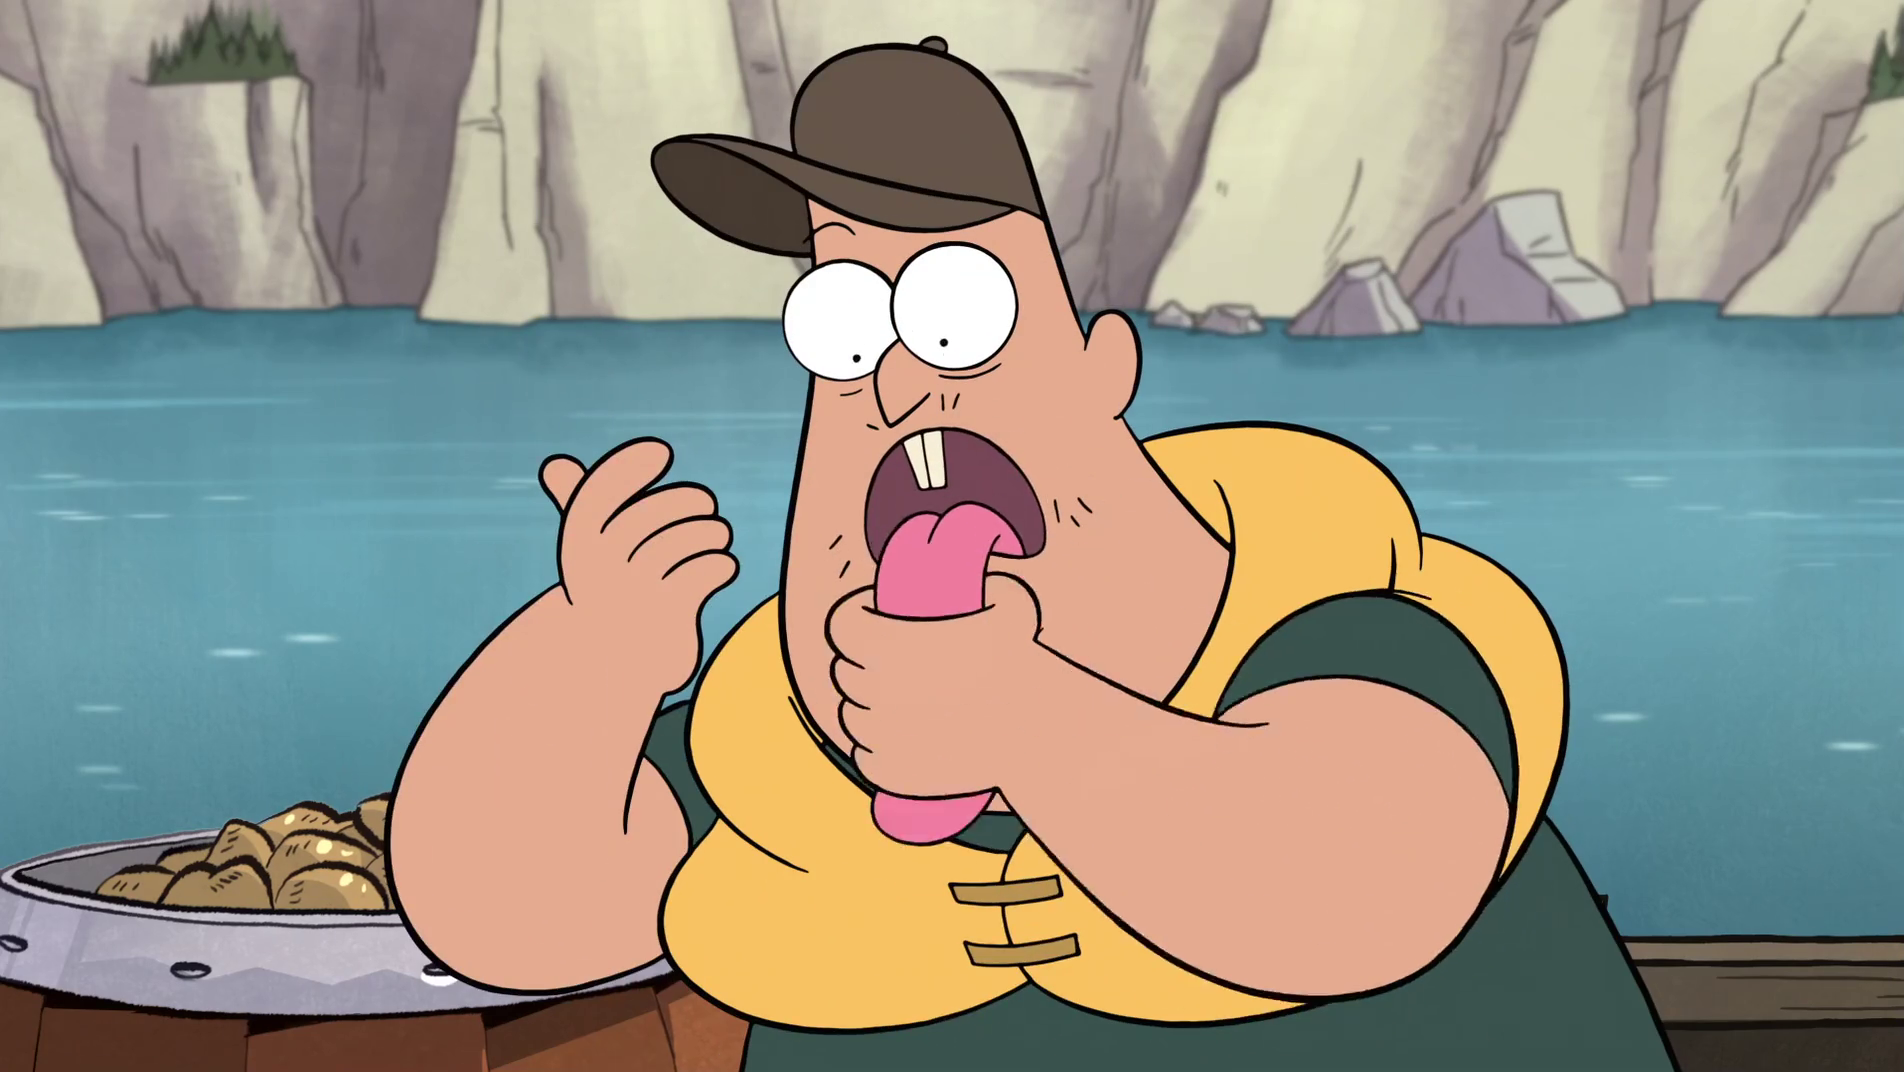 S1e2_soos_wiping_fish_food.png